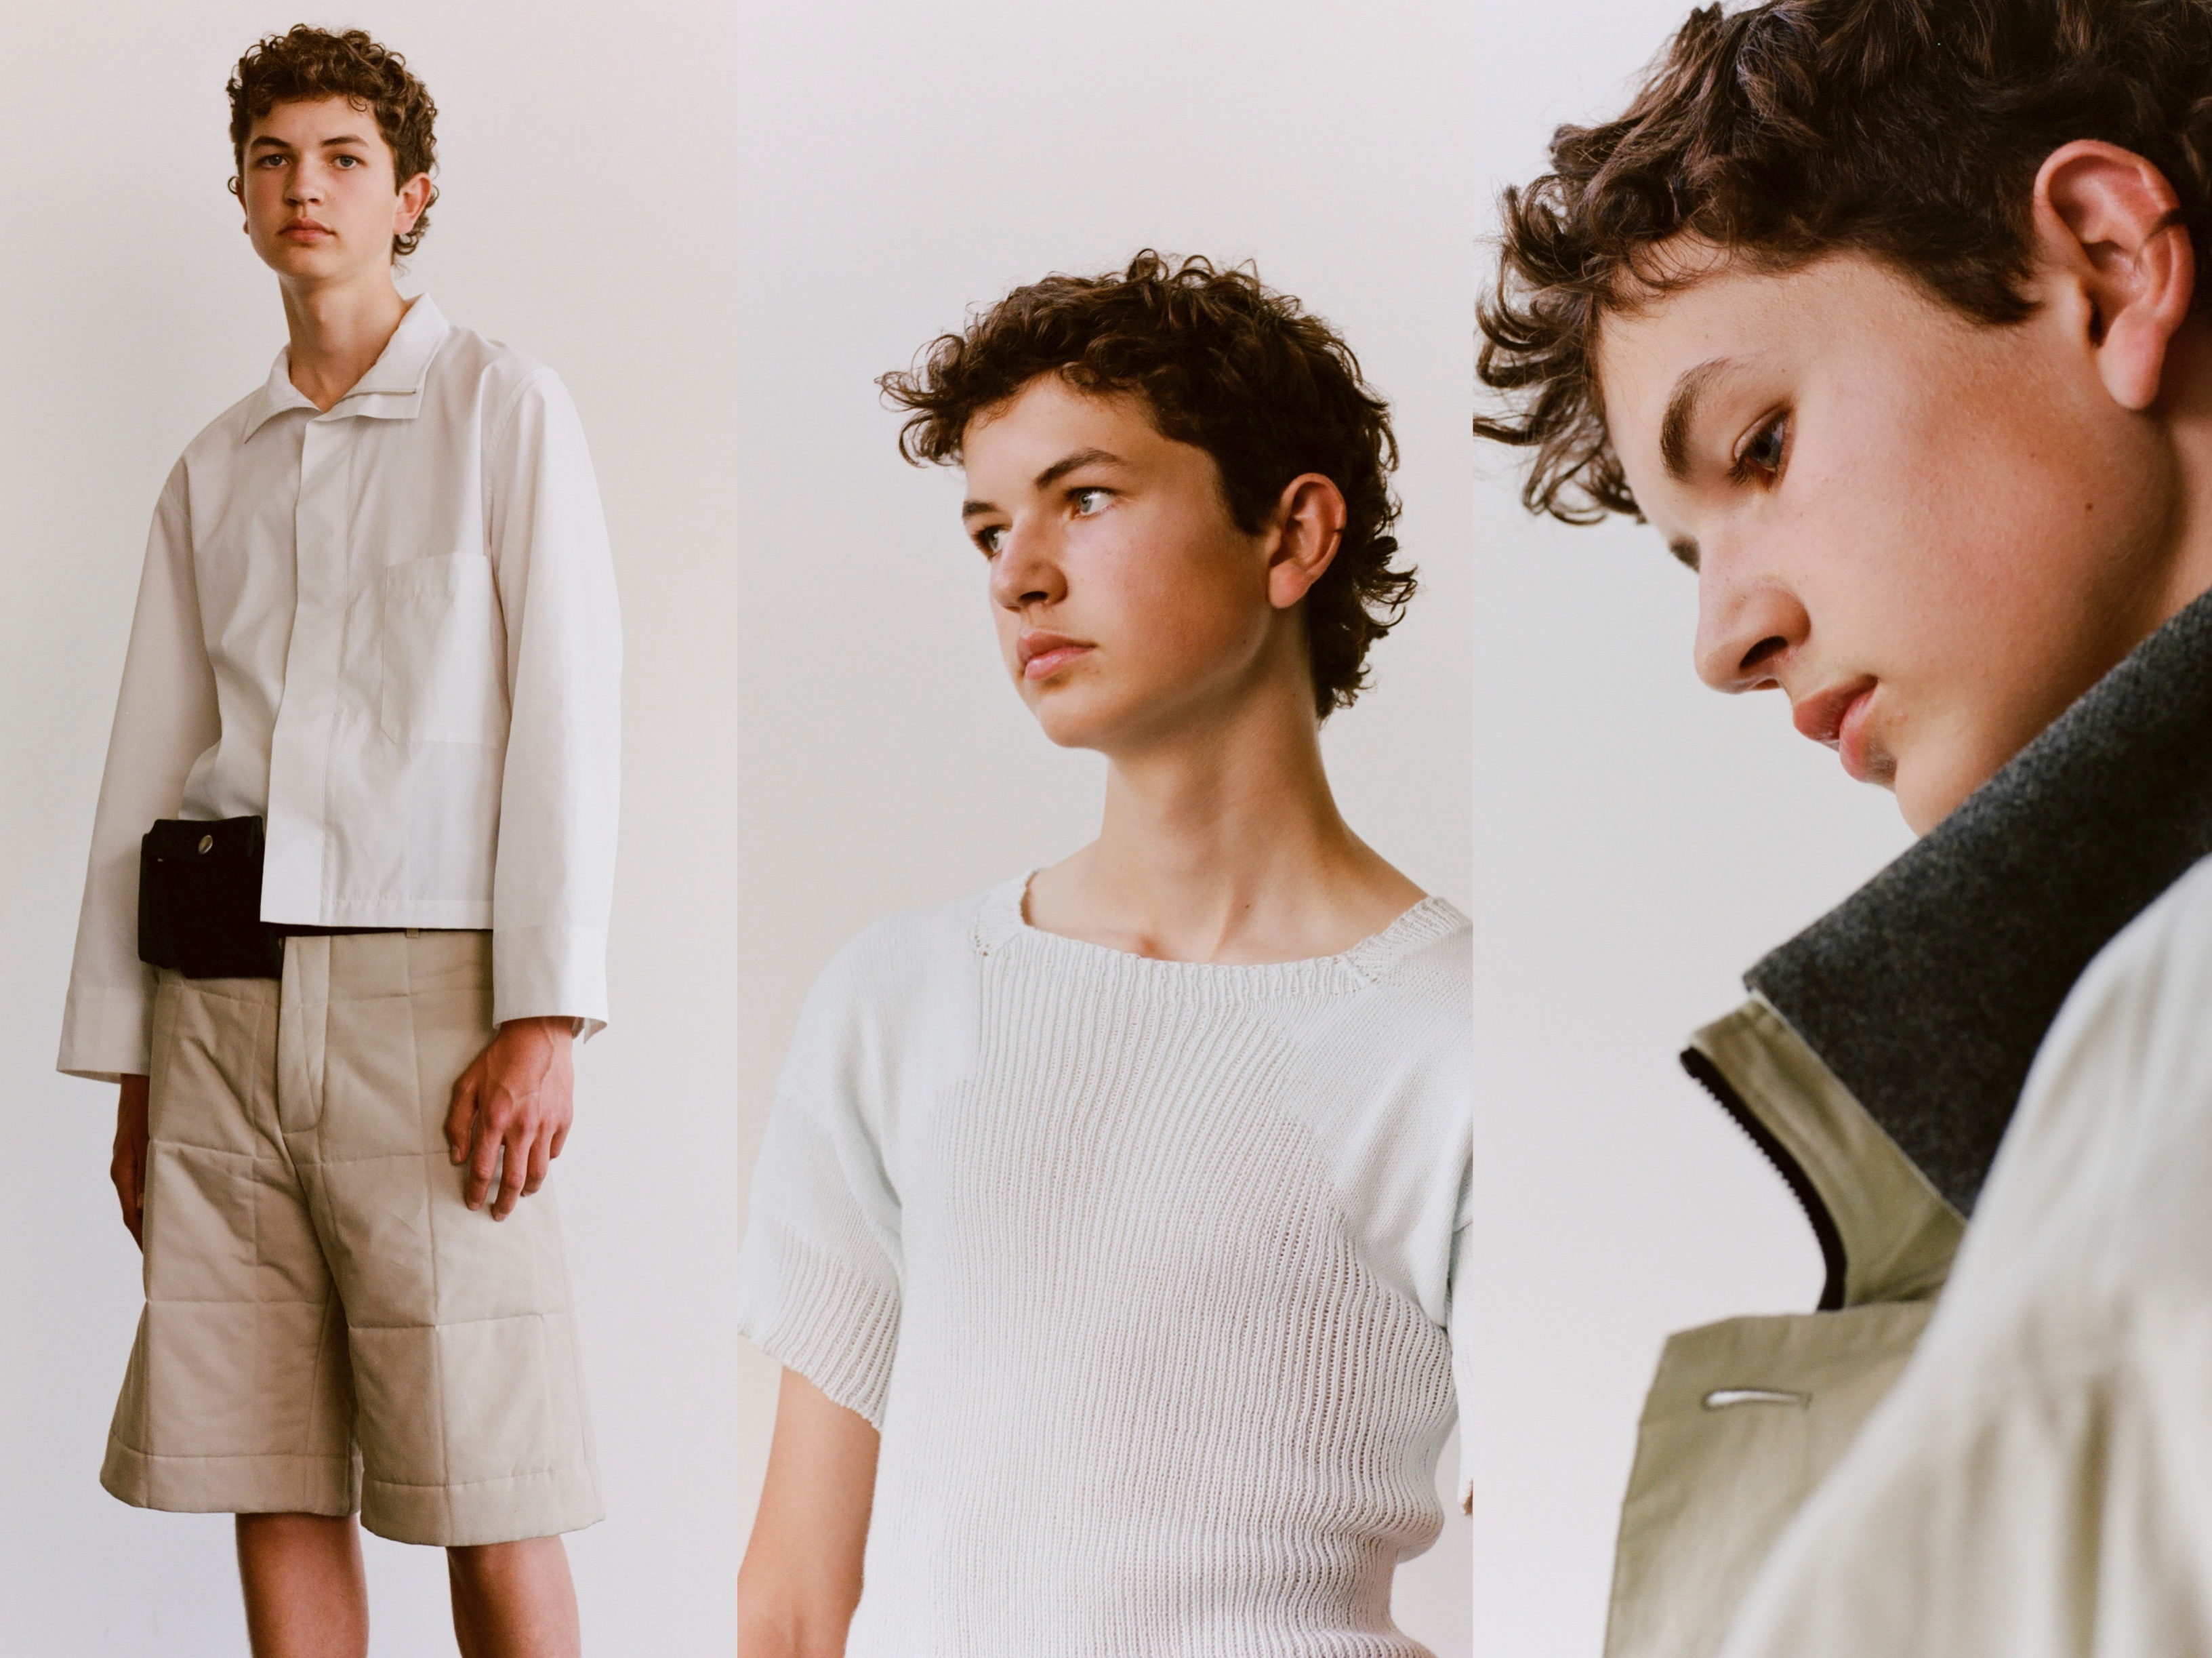 Three looks from Ben Osborn spring 2022 collection